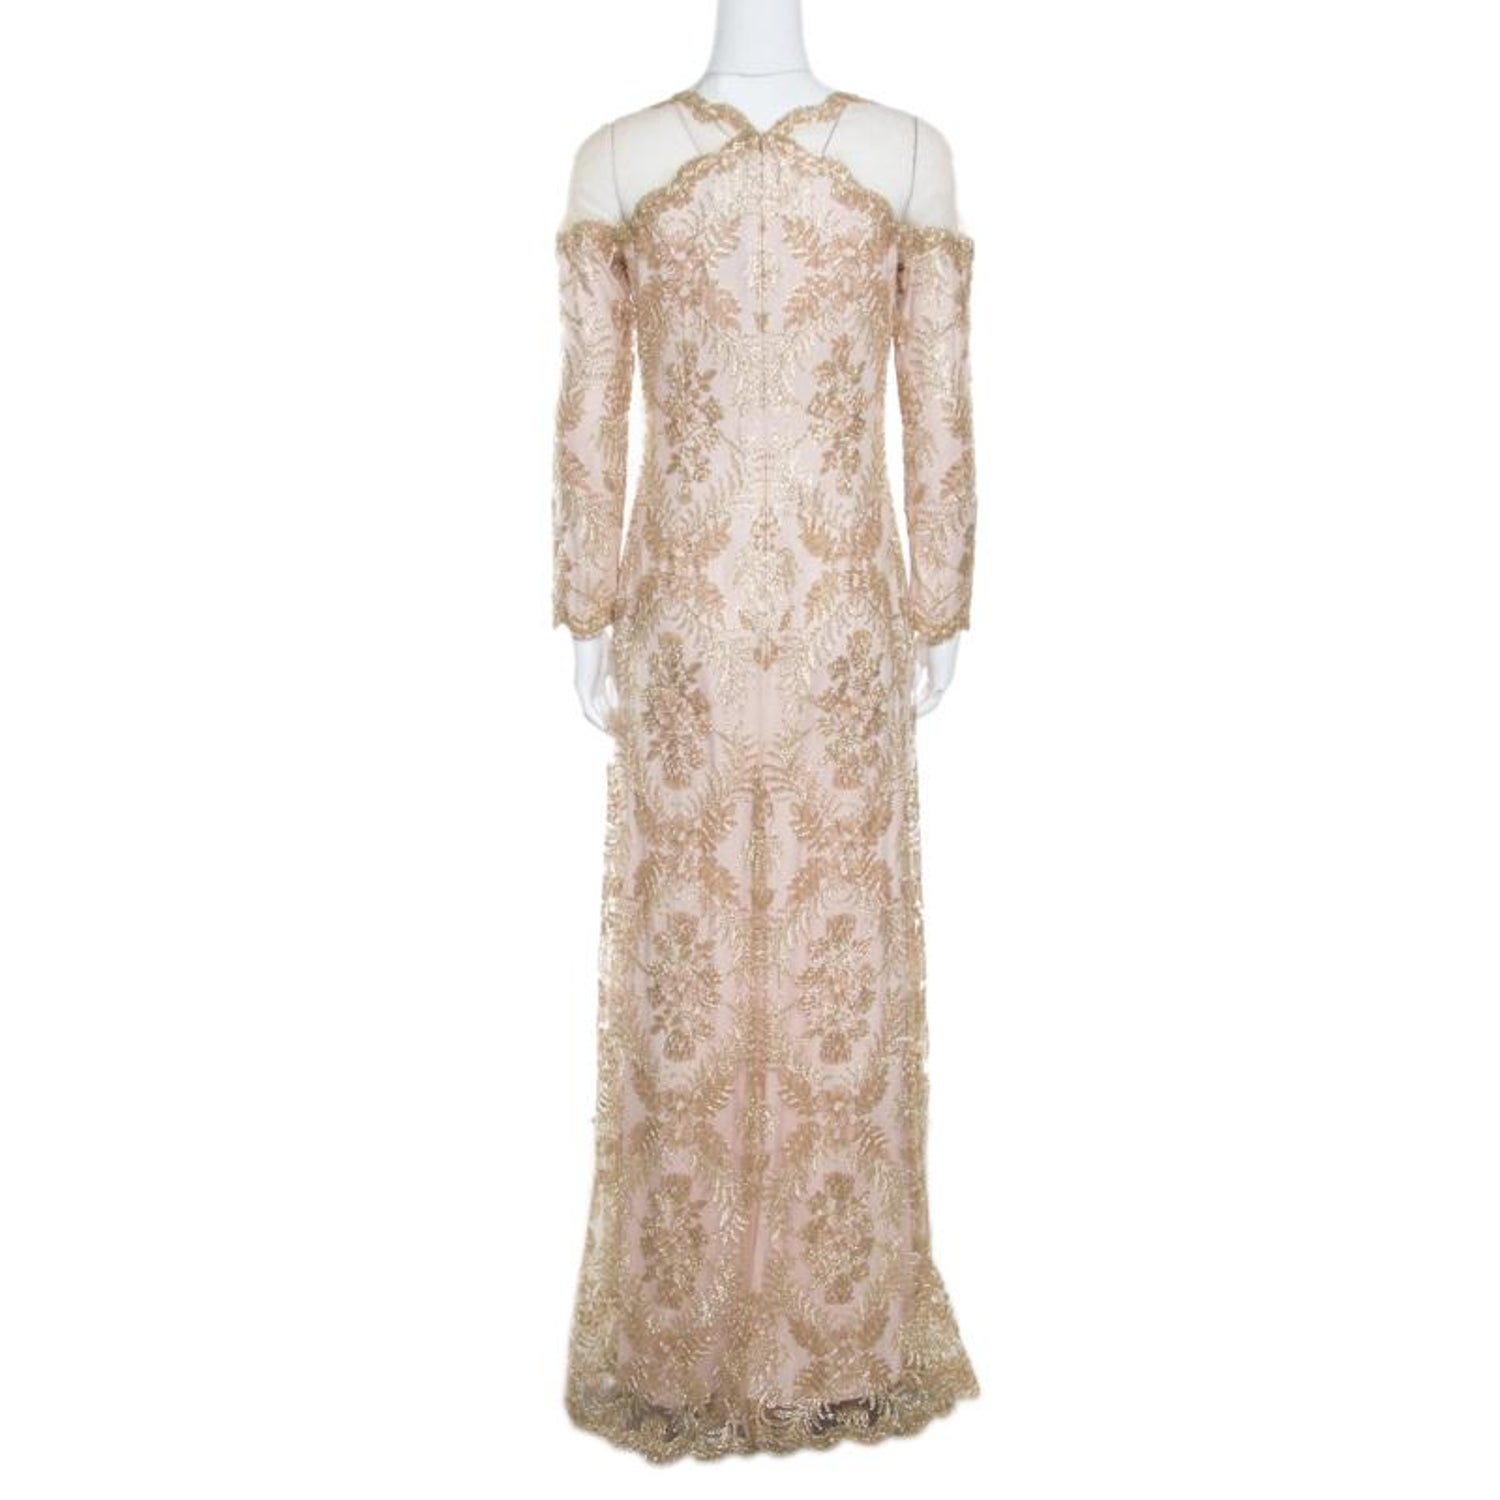 992dacbe3f Tadashi Shoji Light Gold Metallic Cord Embroidered Detail Tulle Evening Gown  S For Sale at 1stdibs